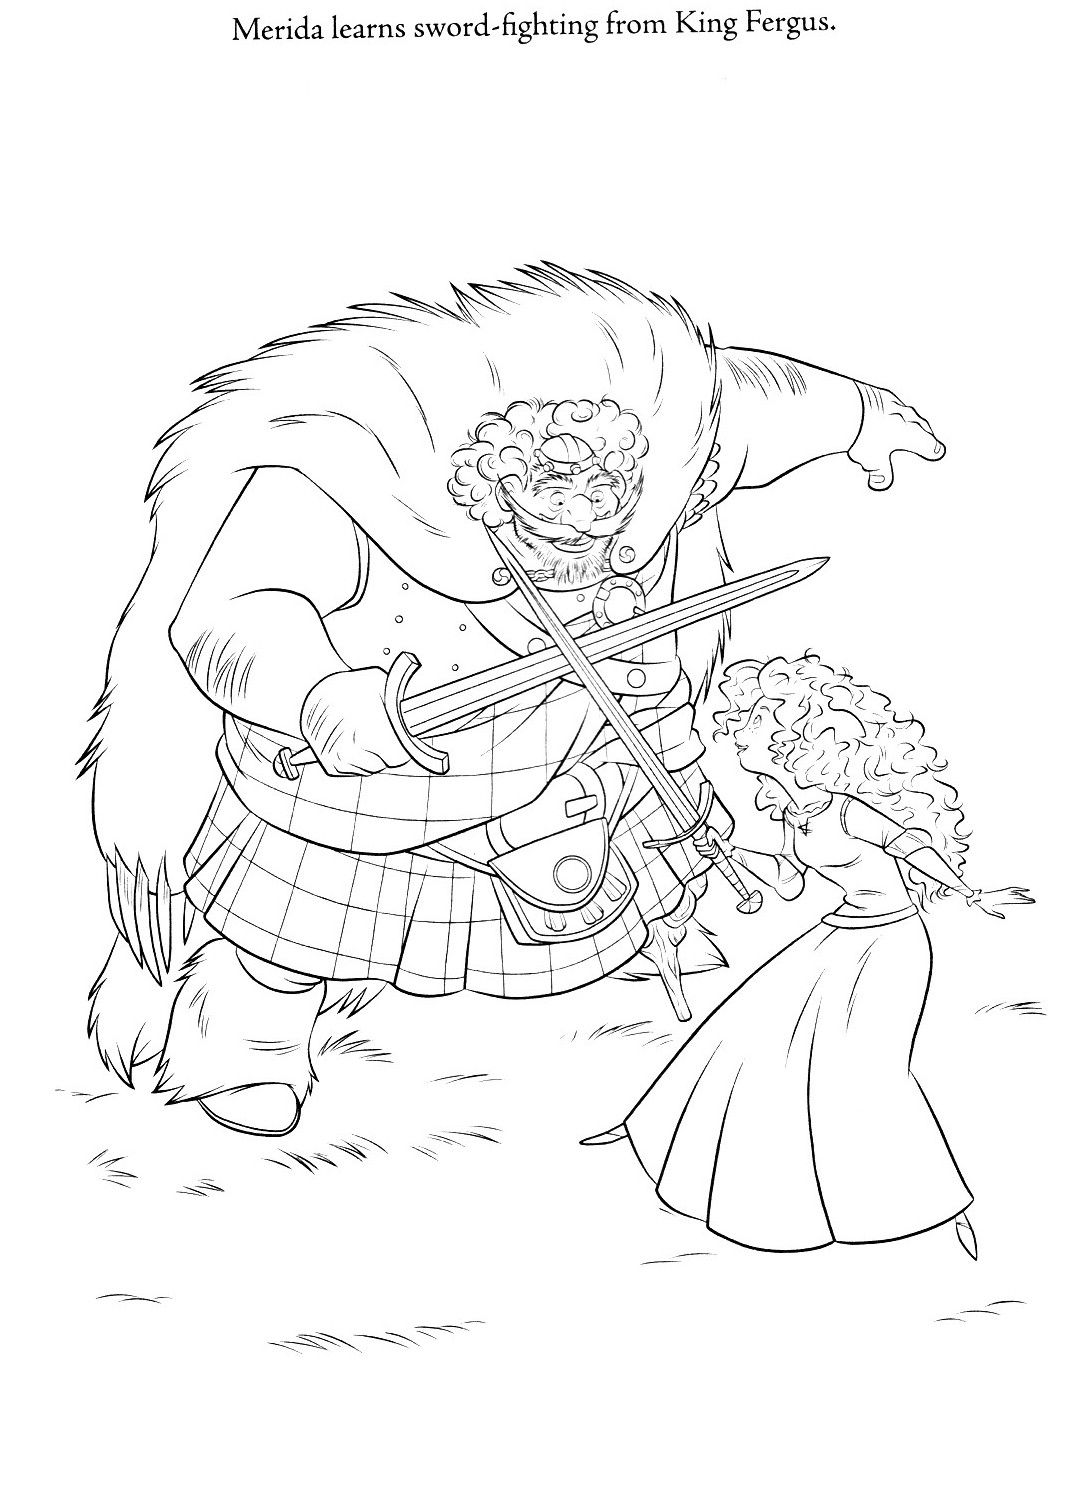 1071x1485 Coloring Page Of Merida And King Fergus